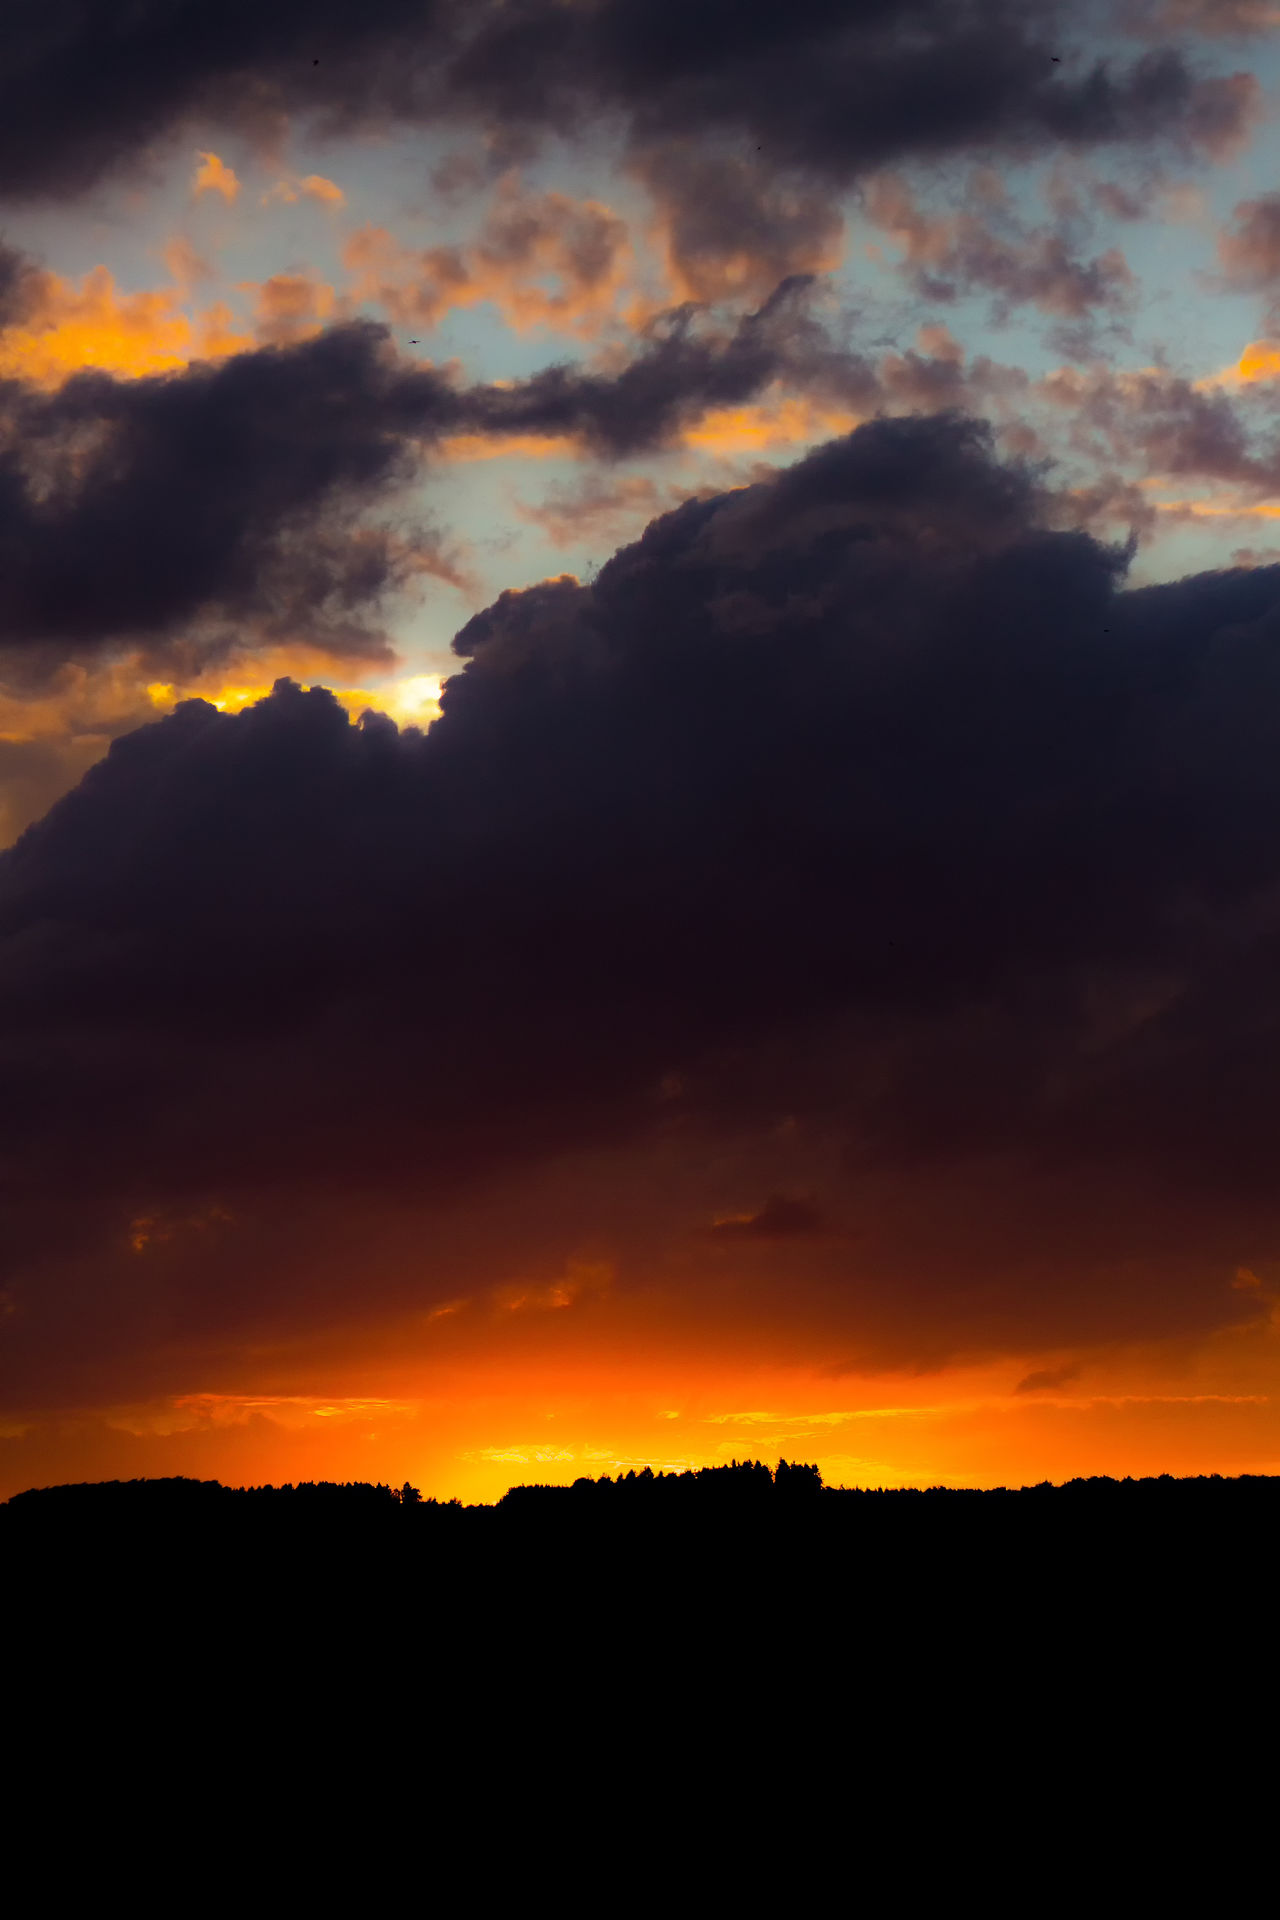 Sunset Beauty In Nature Dramatic Sky Silhouette Sky Nature Orange Color Space And Astronomy Cloud - Sky Scenics No People Natural Phenomenon Astronomy Star - Space Galaxy Outdoors Tree Mountain Constellation Landscape